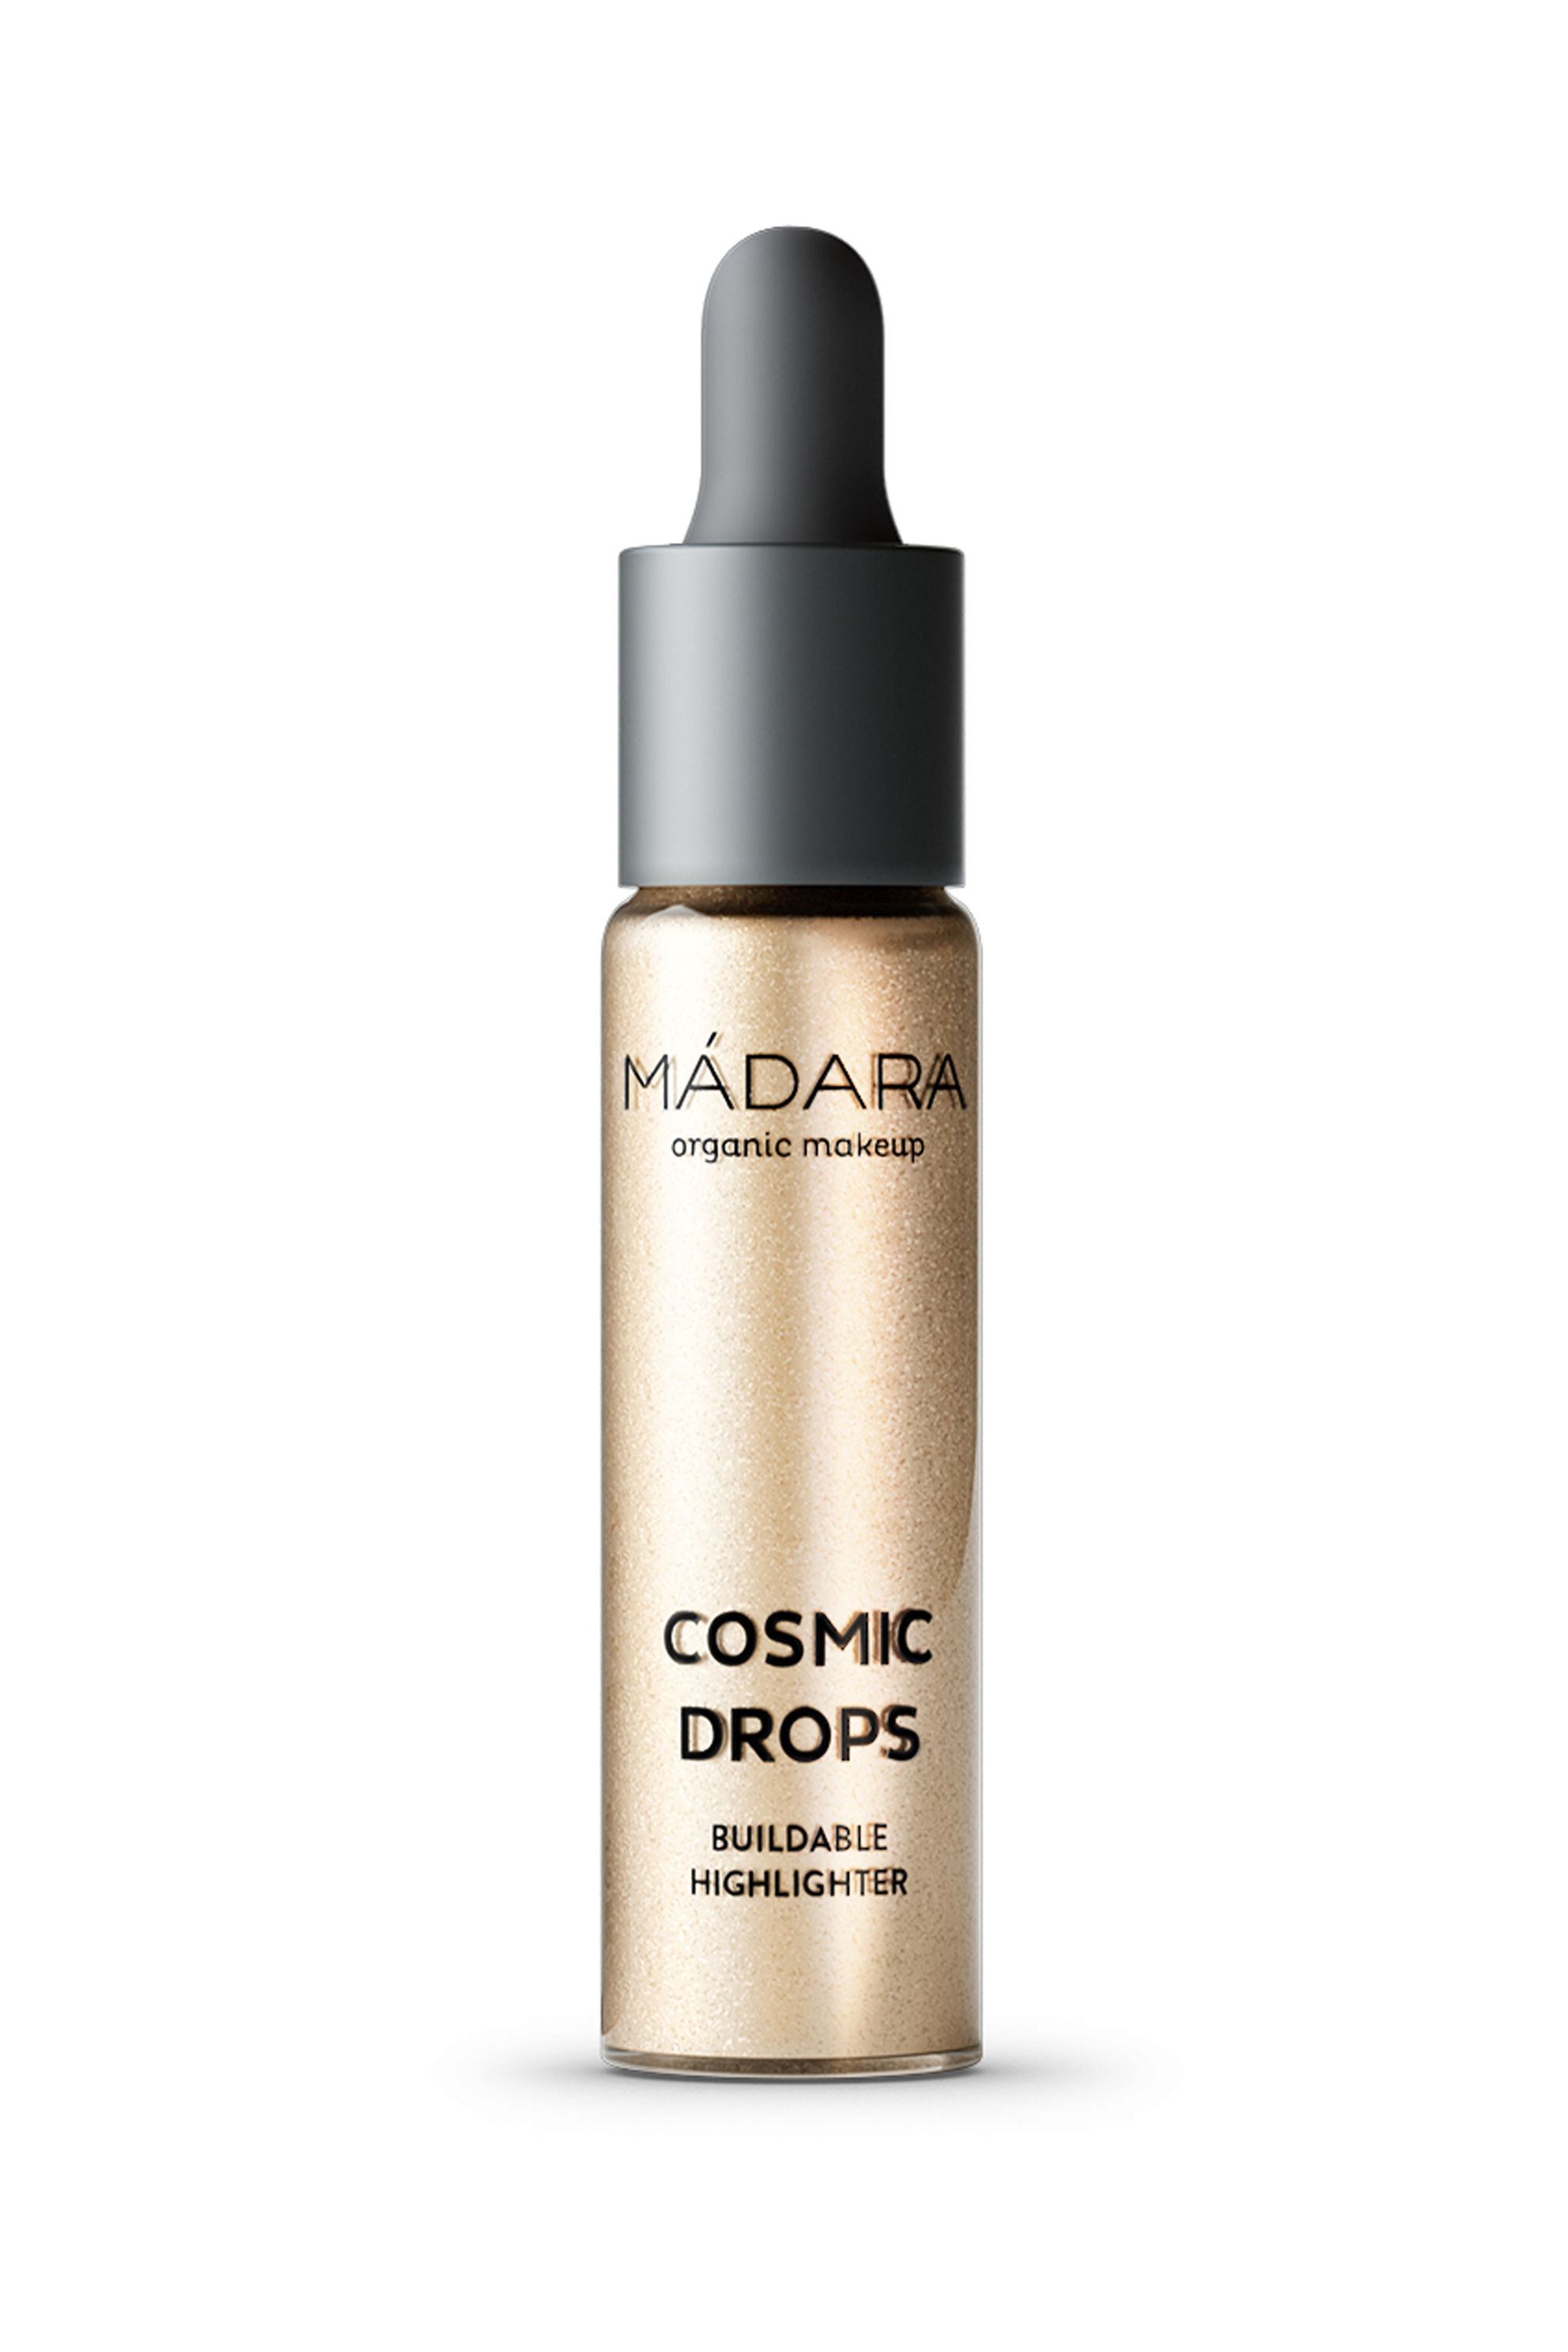 Blissim : Mádara Cosmetics - Highlighter liquide Cosmic Drops - Highlighter liquide Cosmic Drops